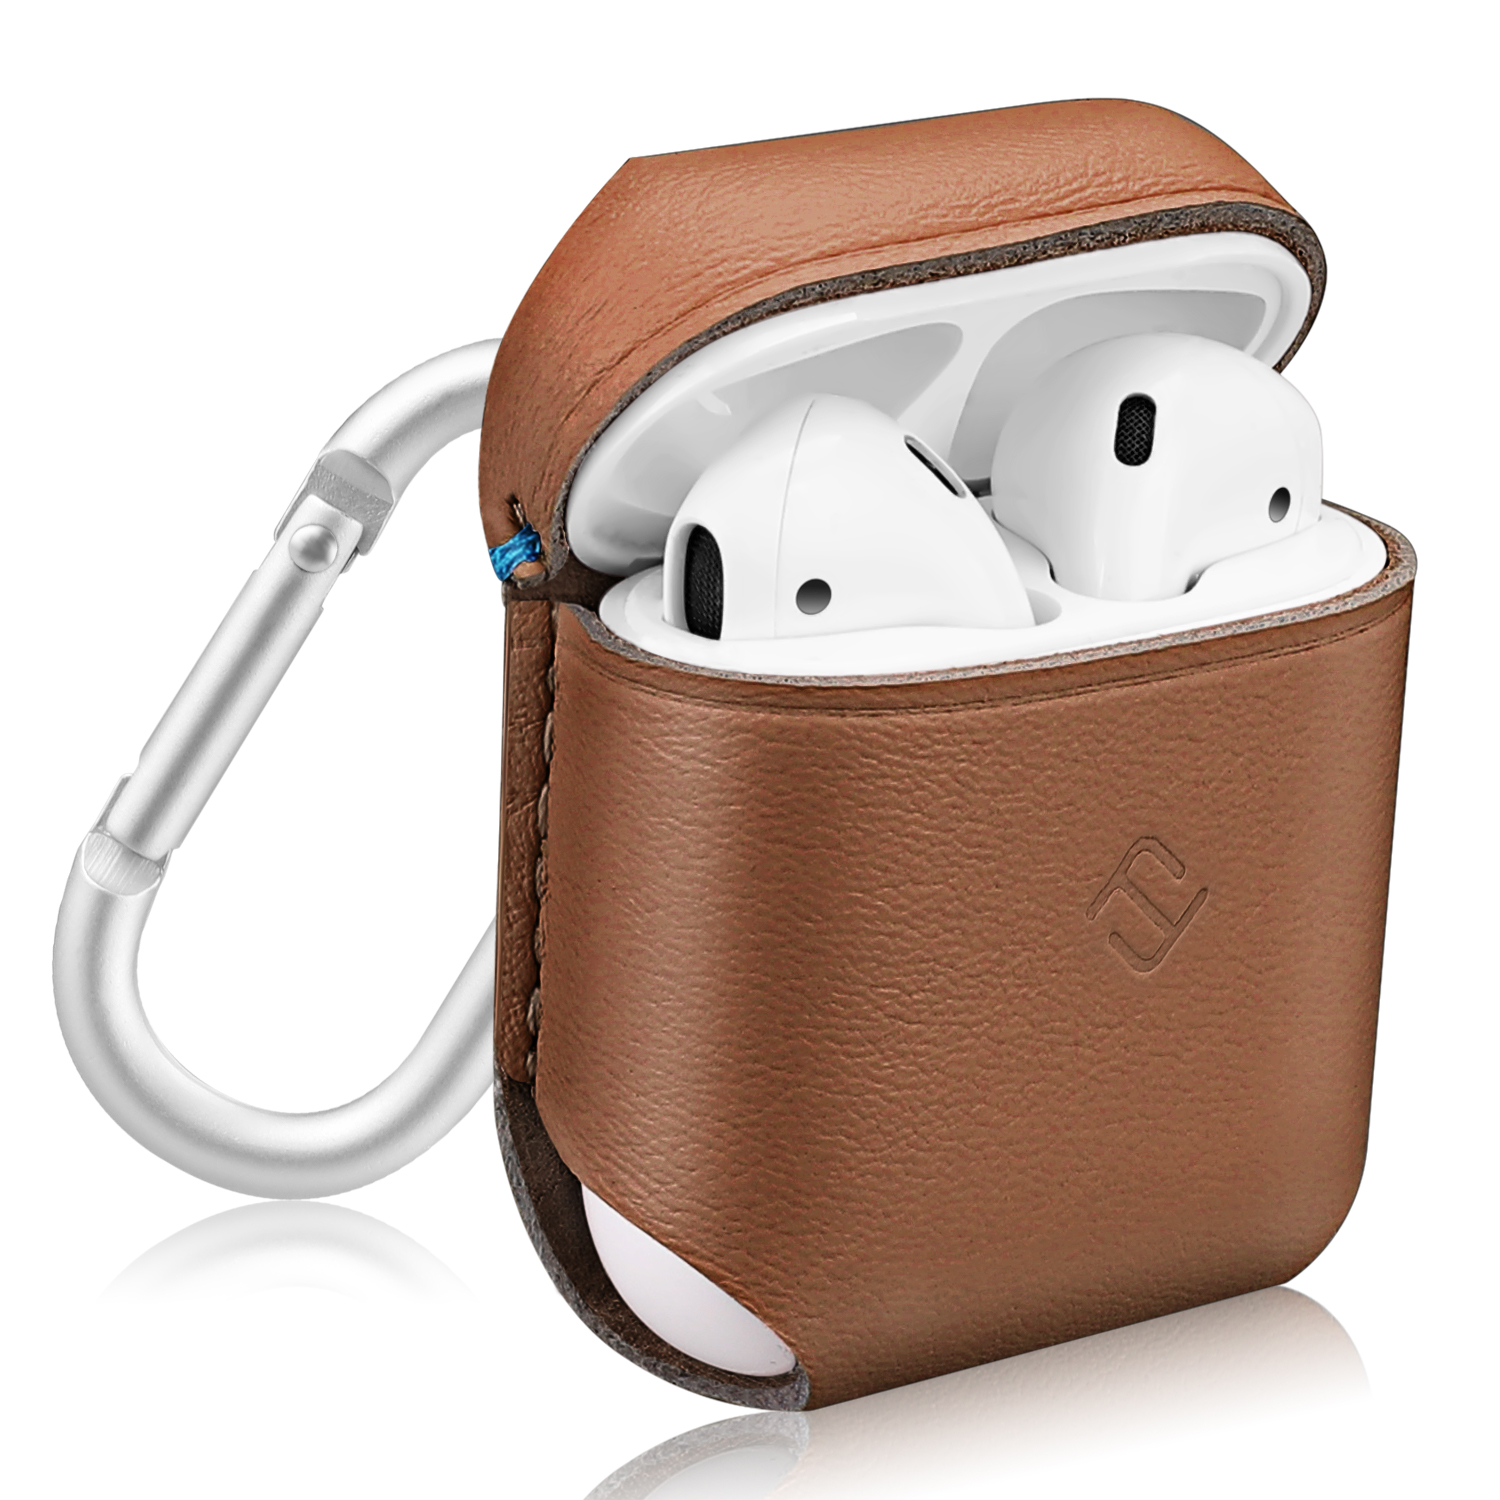 Fintie AirPods Genuine Leather Case - Protective Earbud Cover Skin with Carabiner, Brown